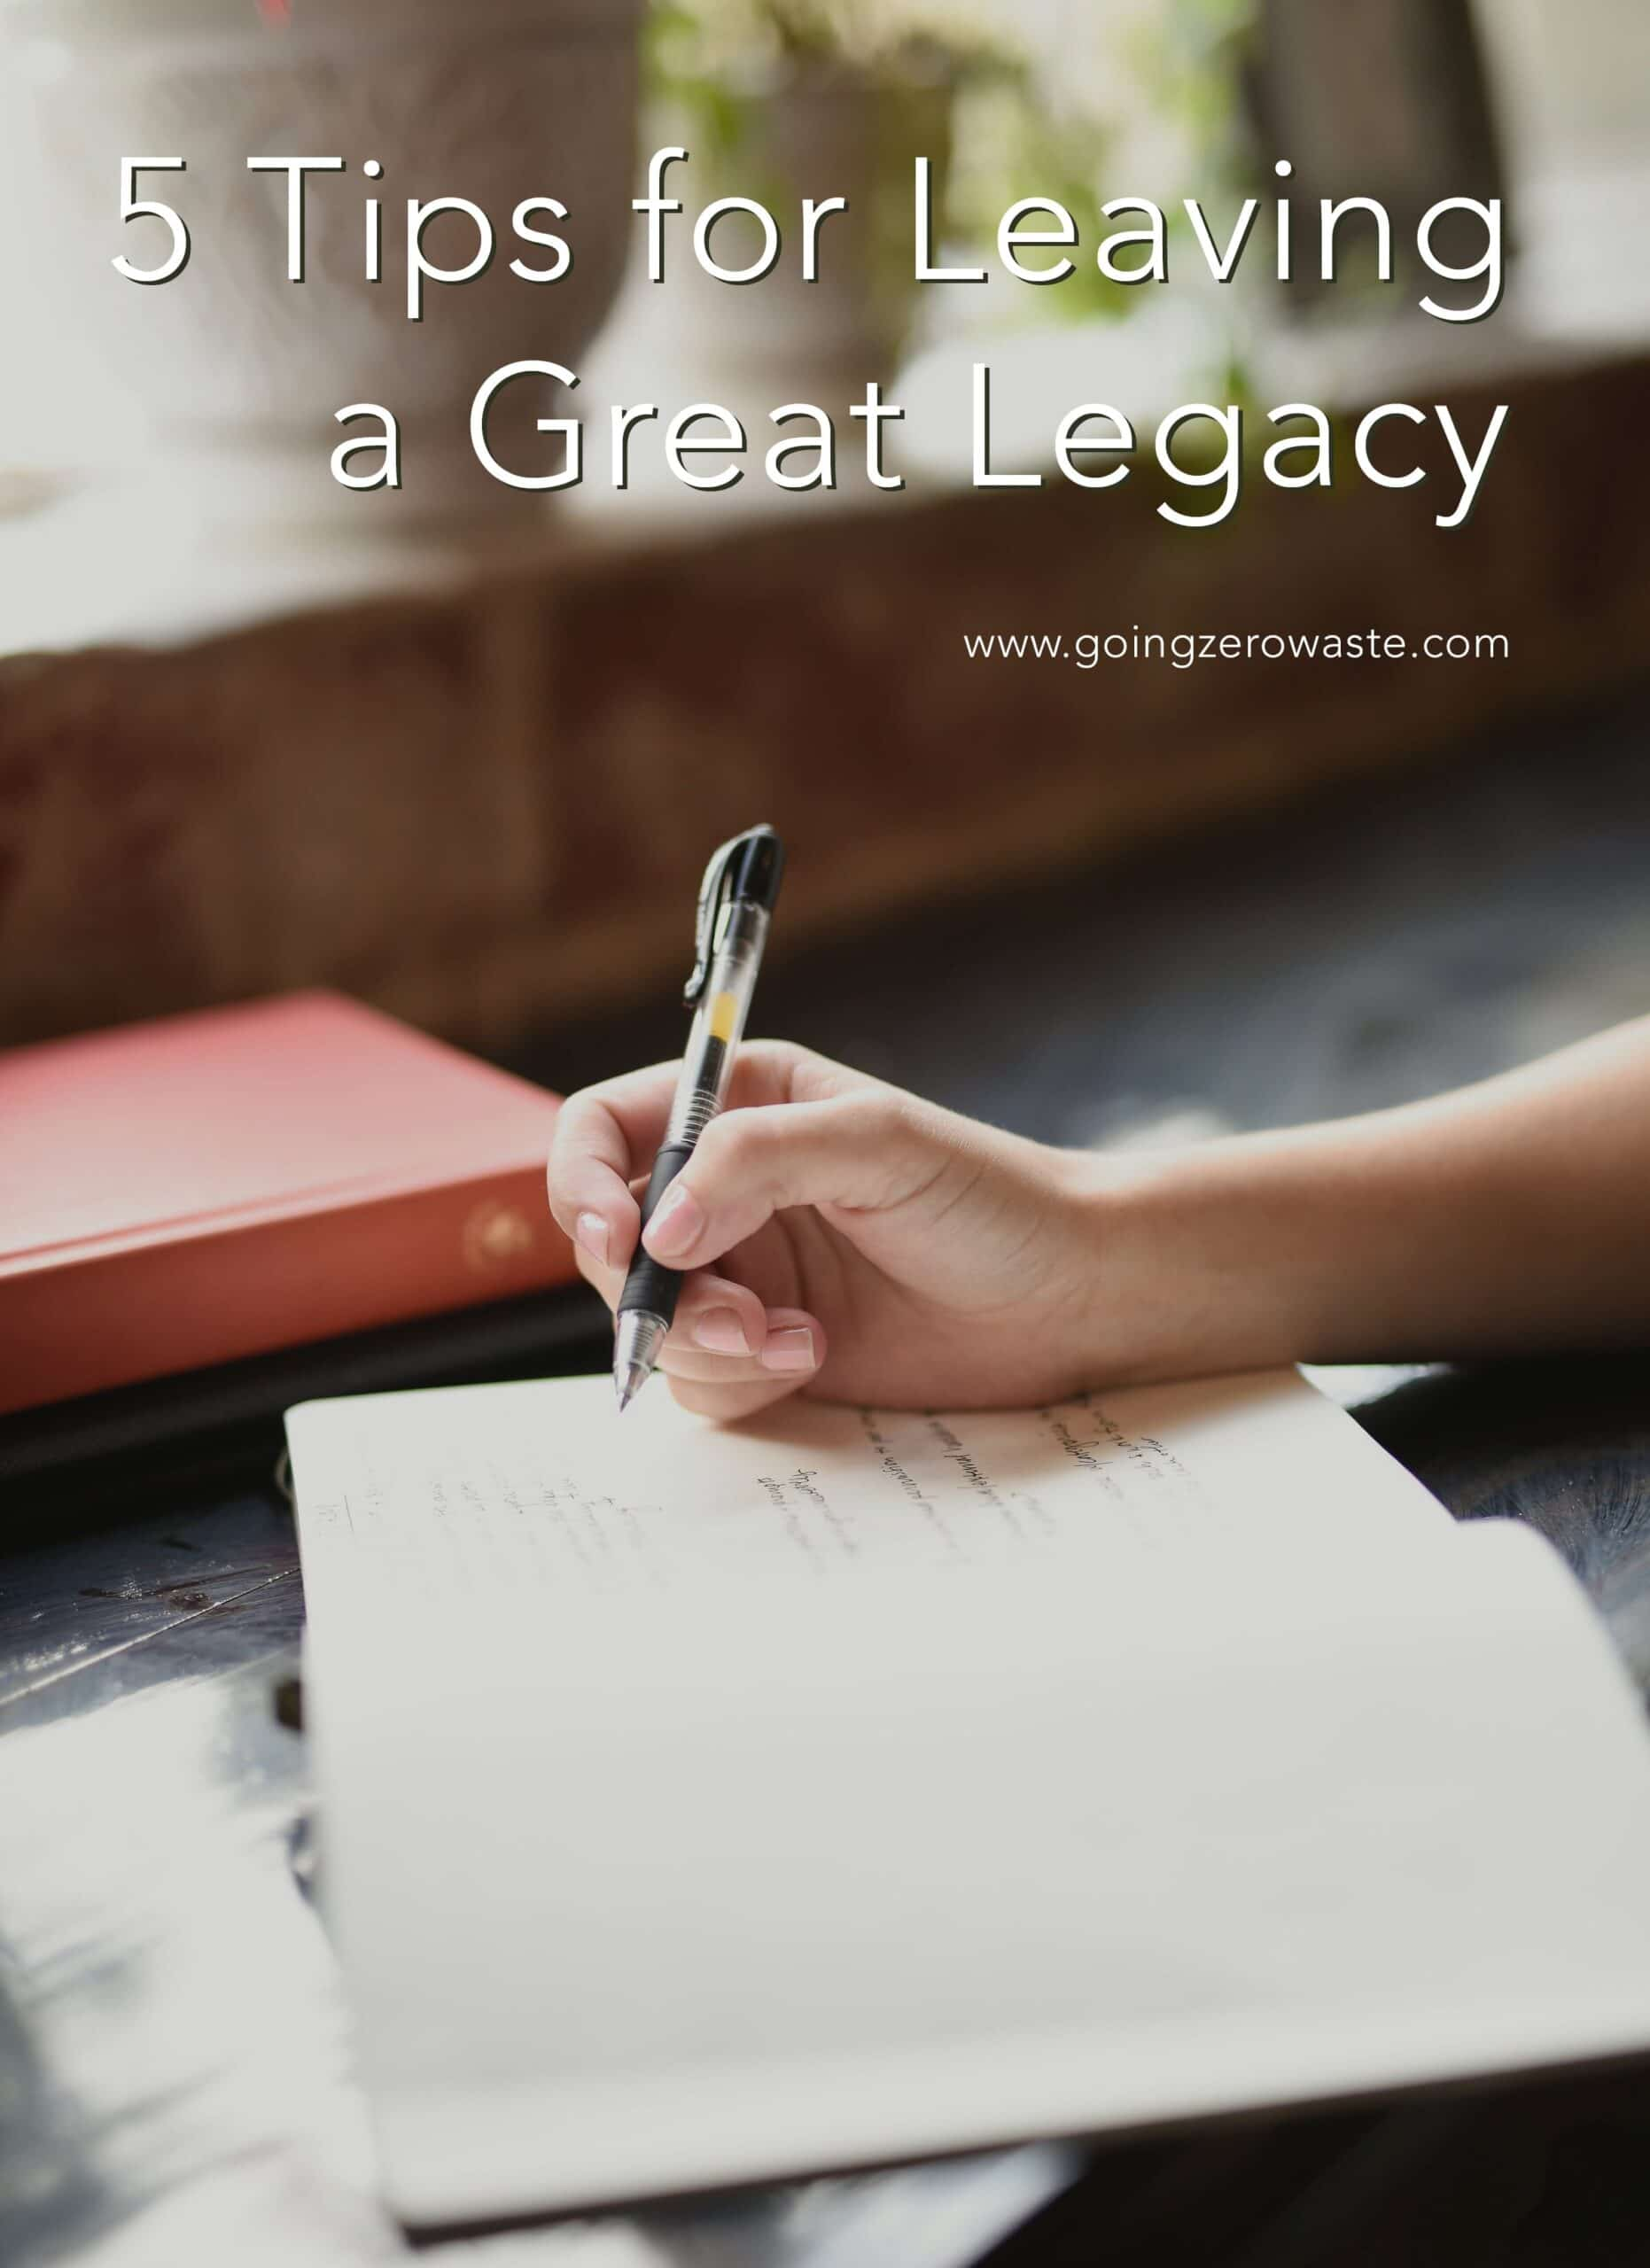 5 Tips for Leaving a Great Legacy